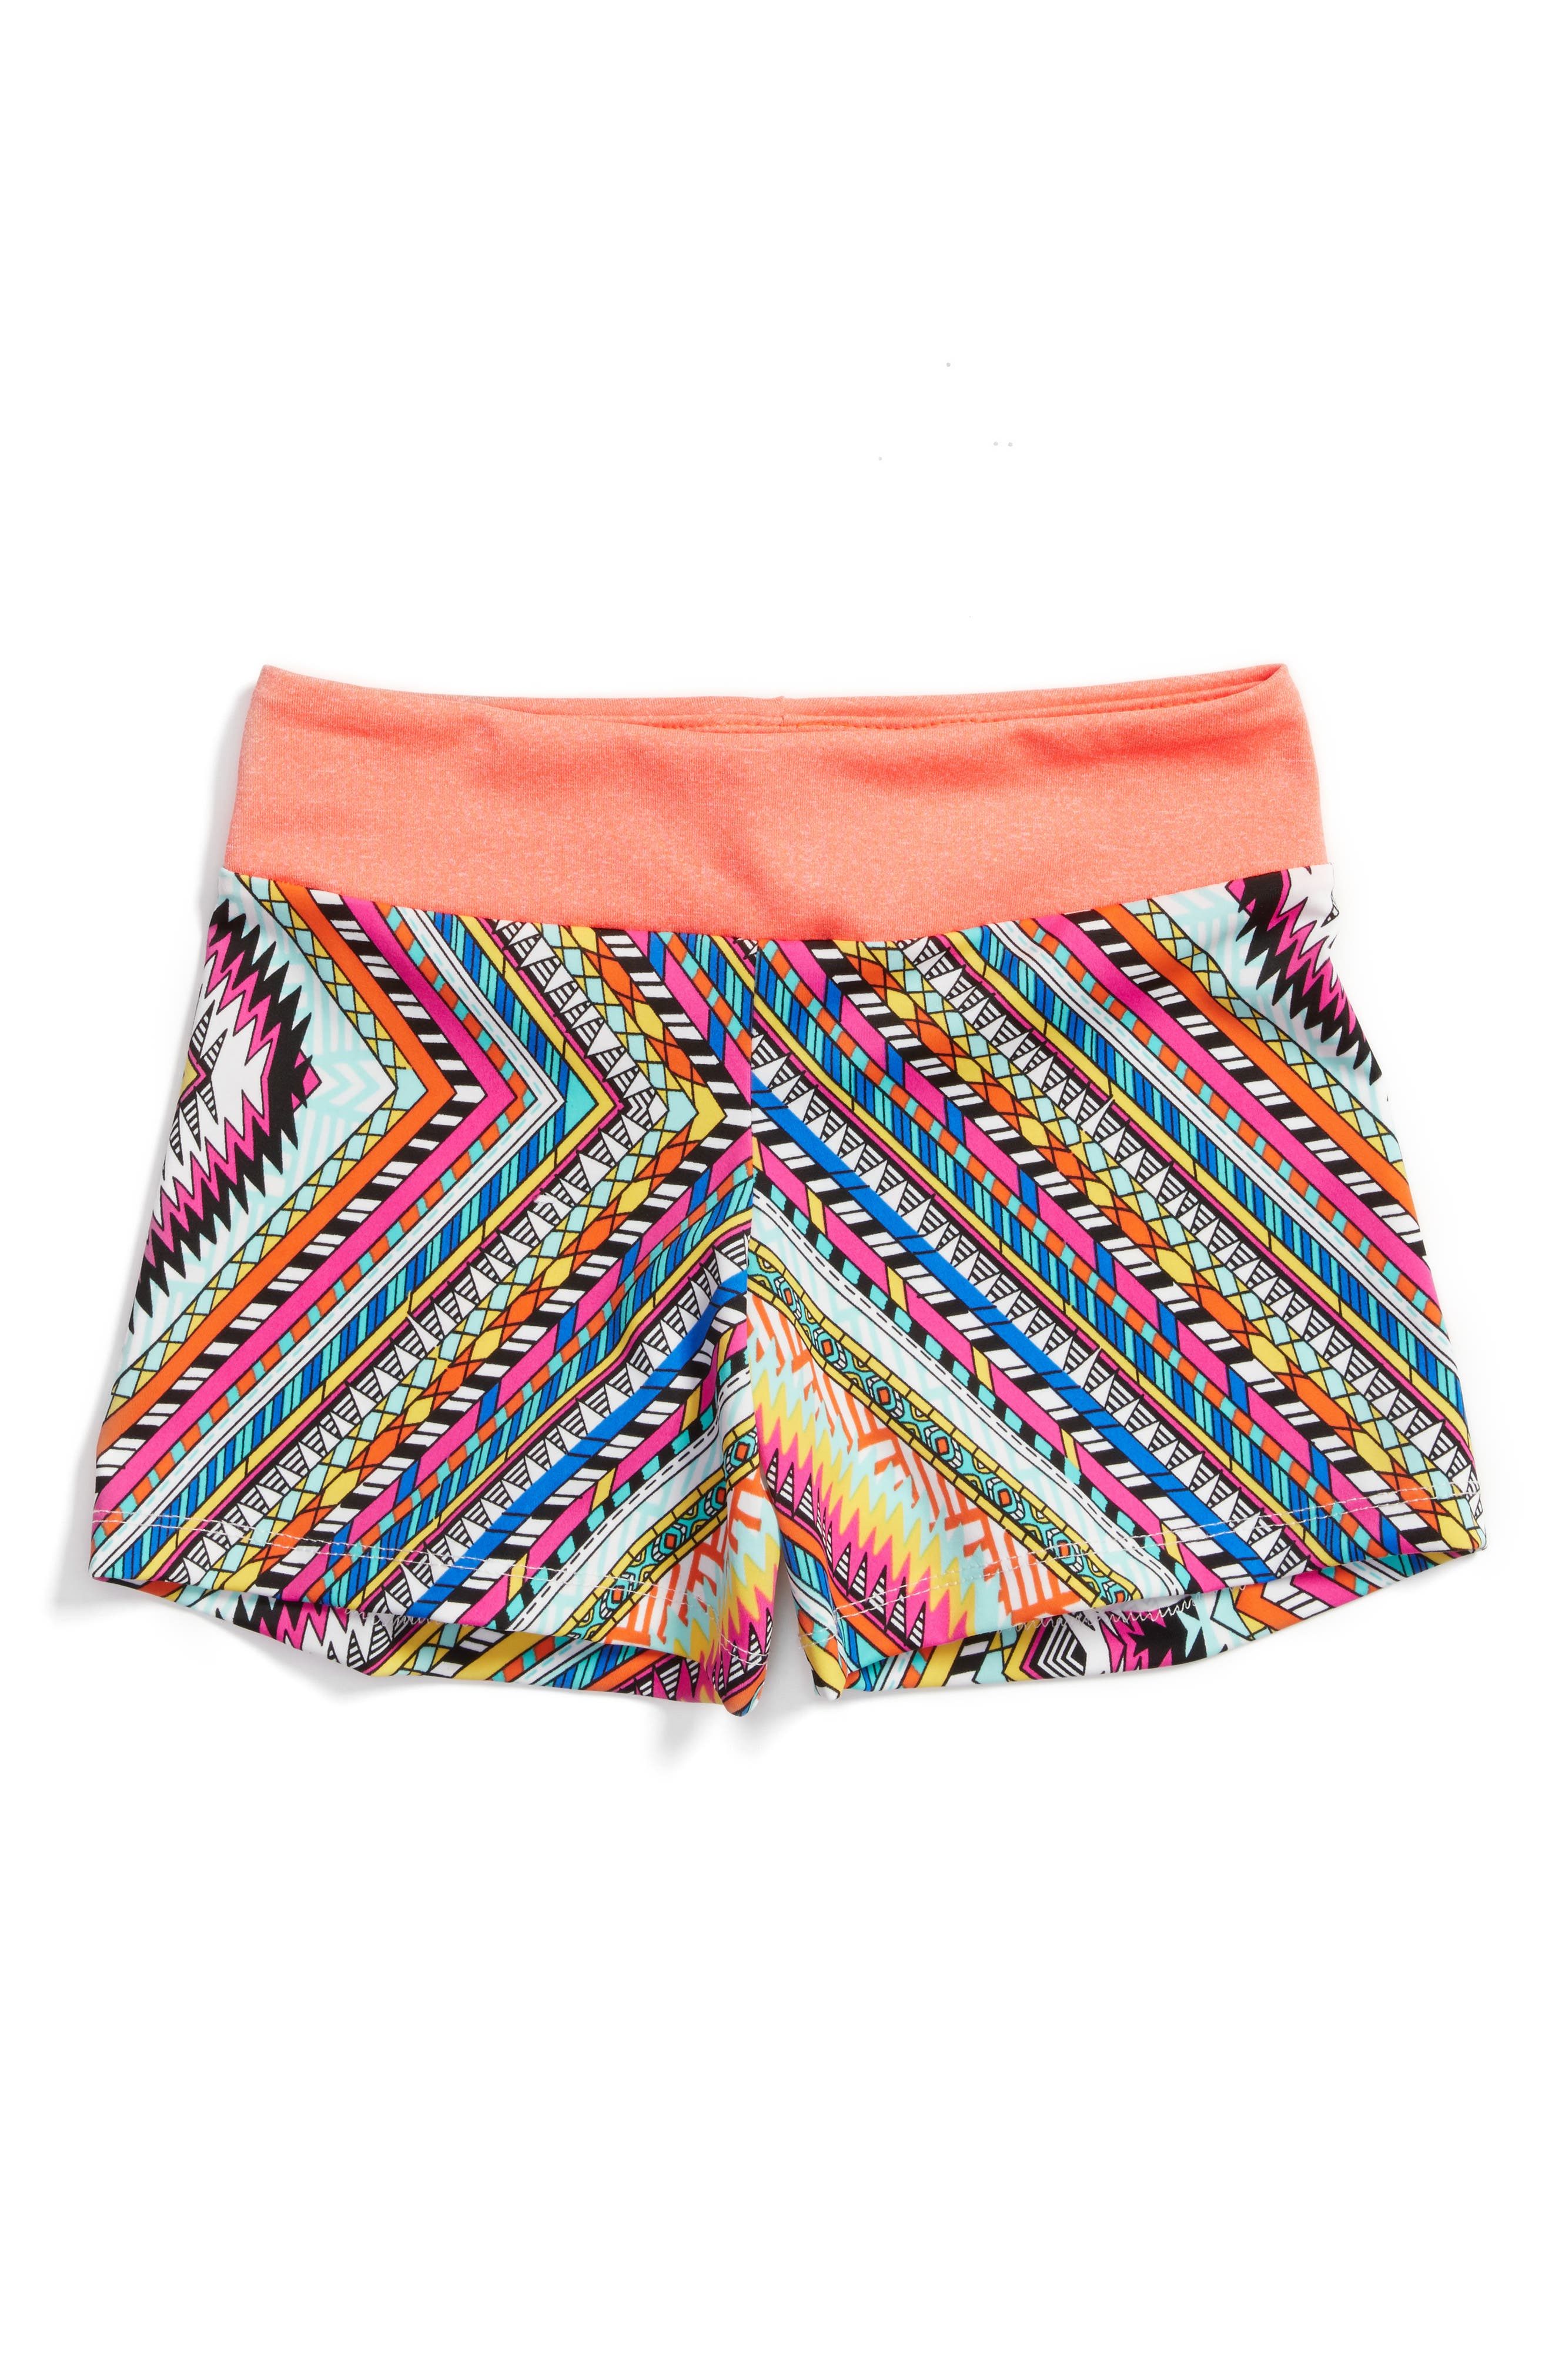 Zigzag Stretch Shorts,                         Main,                         color, 950